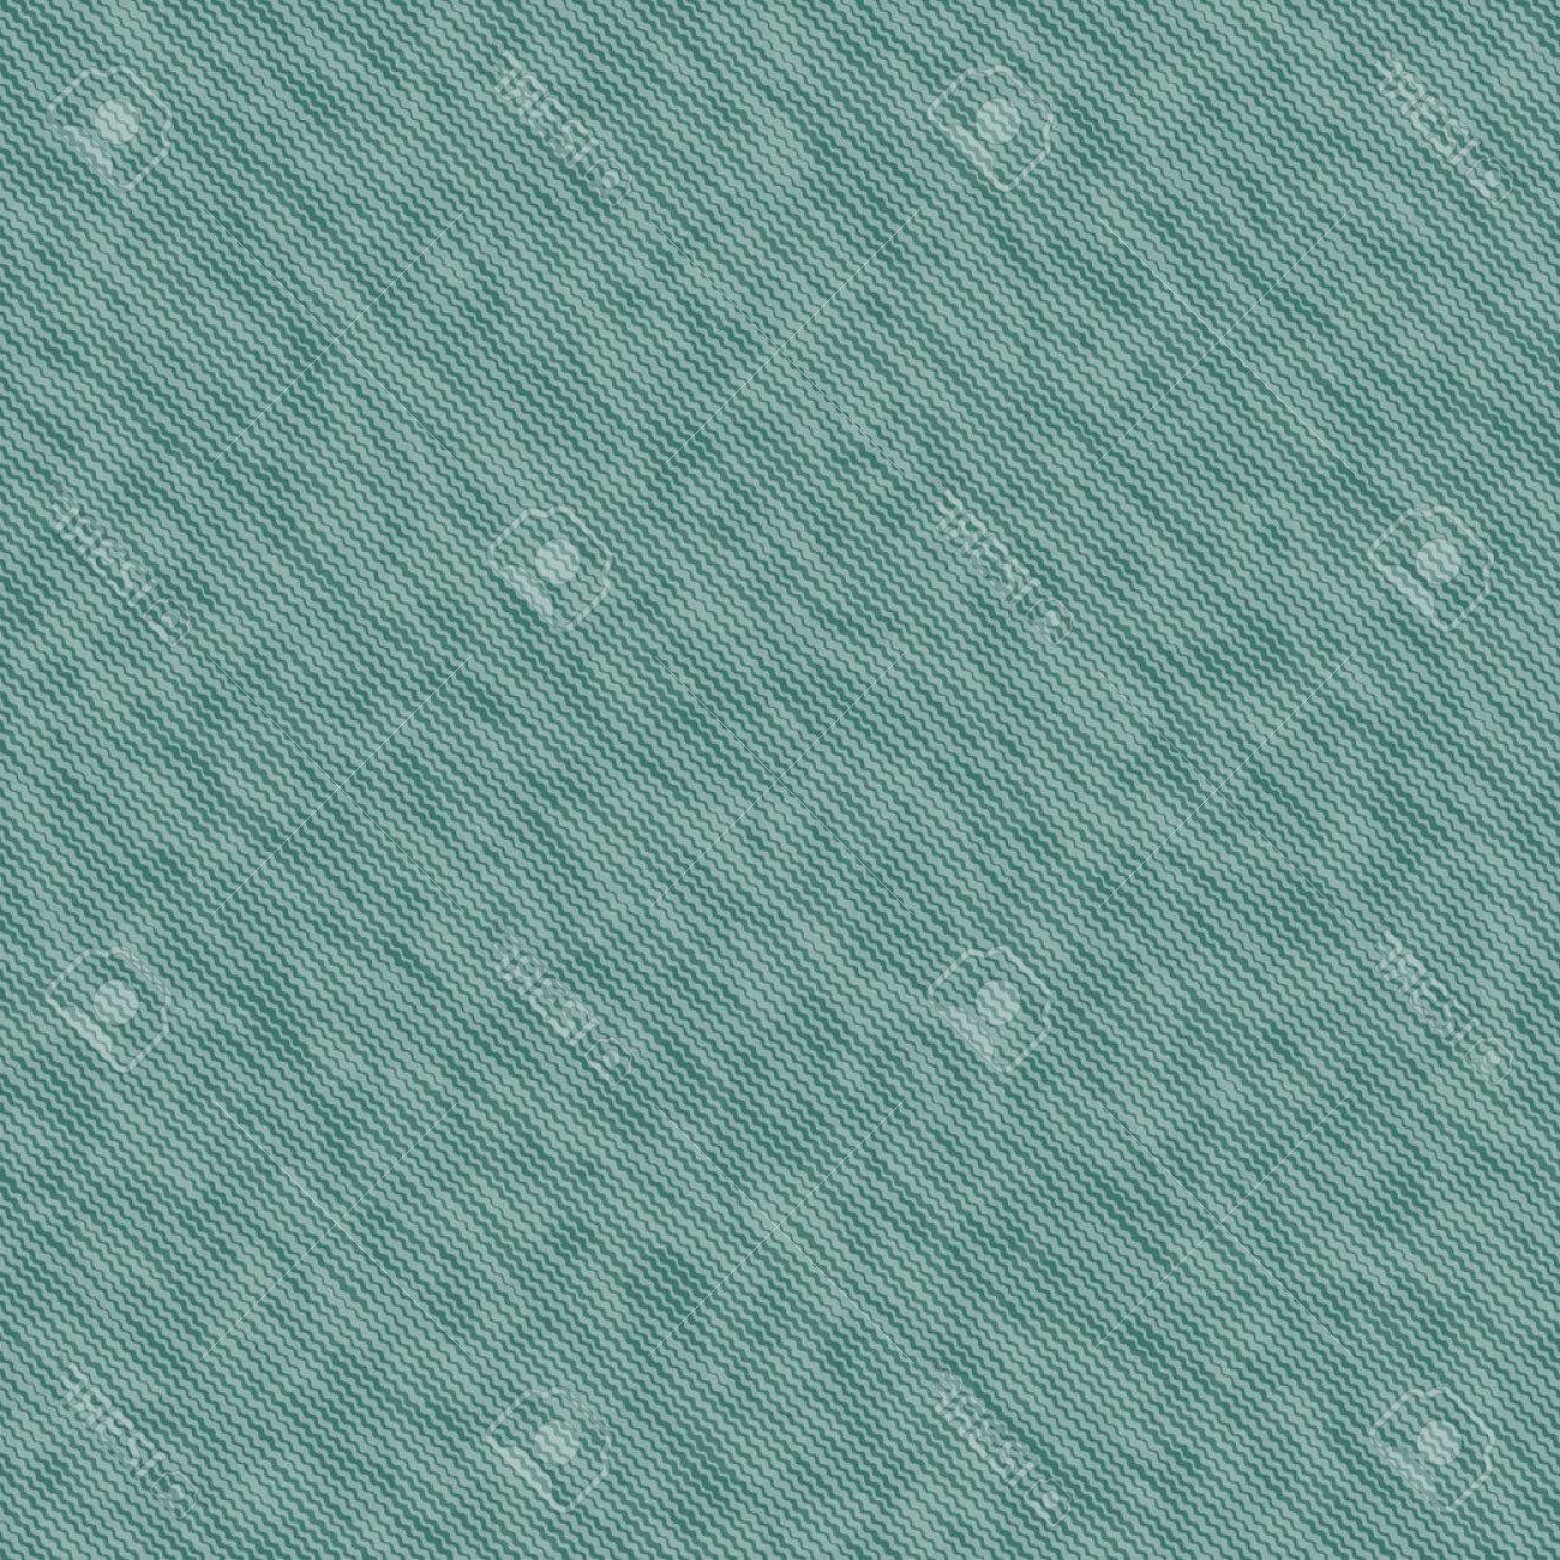 Fabric Vector Background: Photostock Vector Texture Green Knitted Melange Fabric Vector Background